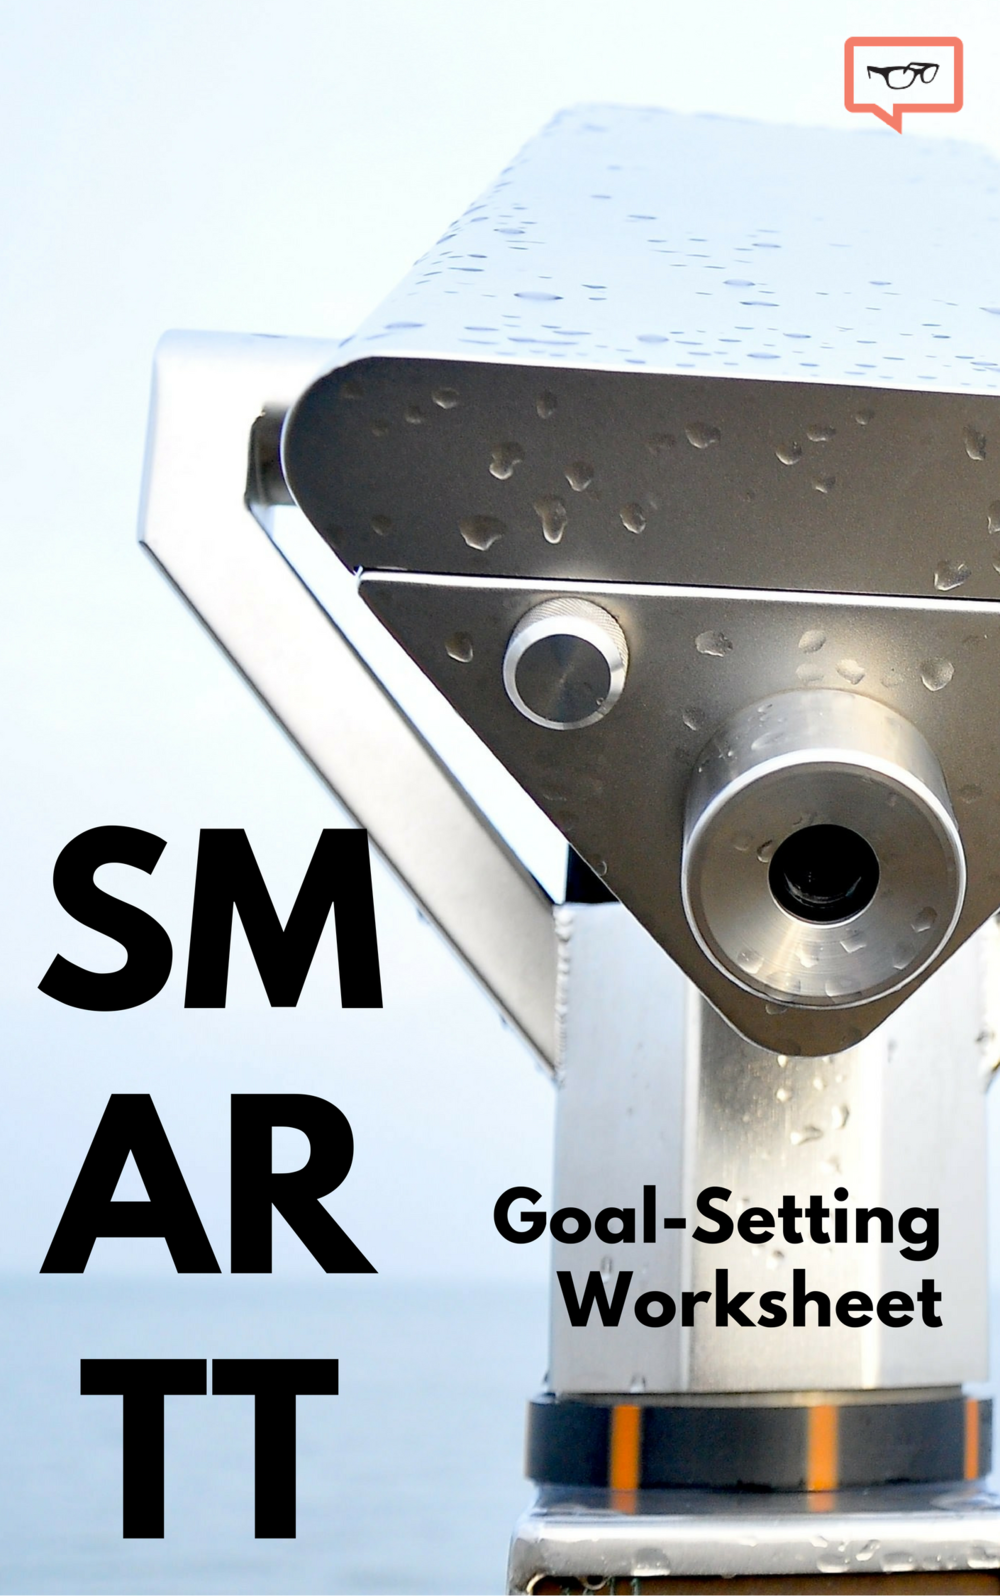 SMARTT Goal-Setting Worksheet  - Identify your goals and challenges and make an actionable plan.